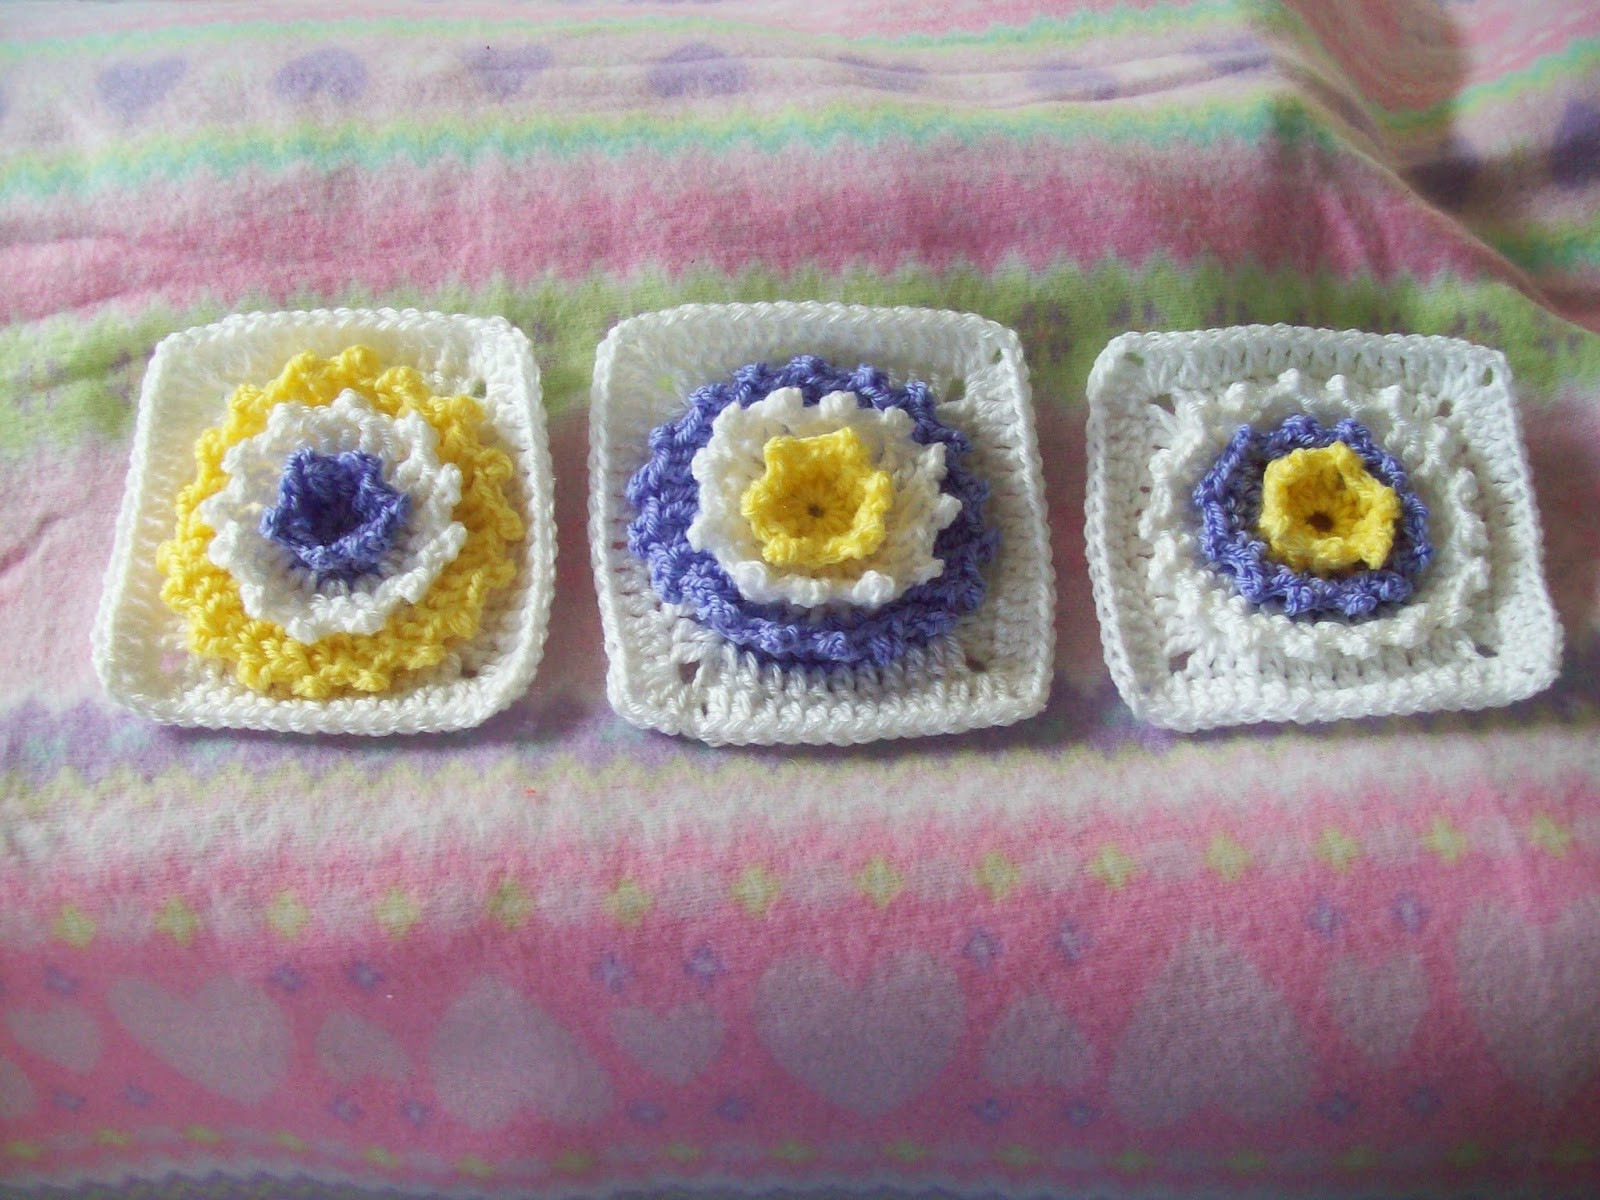 Flower Granny Square Awesome Free Crochet Patterns by Cats Rockin Crochet Of Wonderful 45 Pictures Flower Granny Square